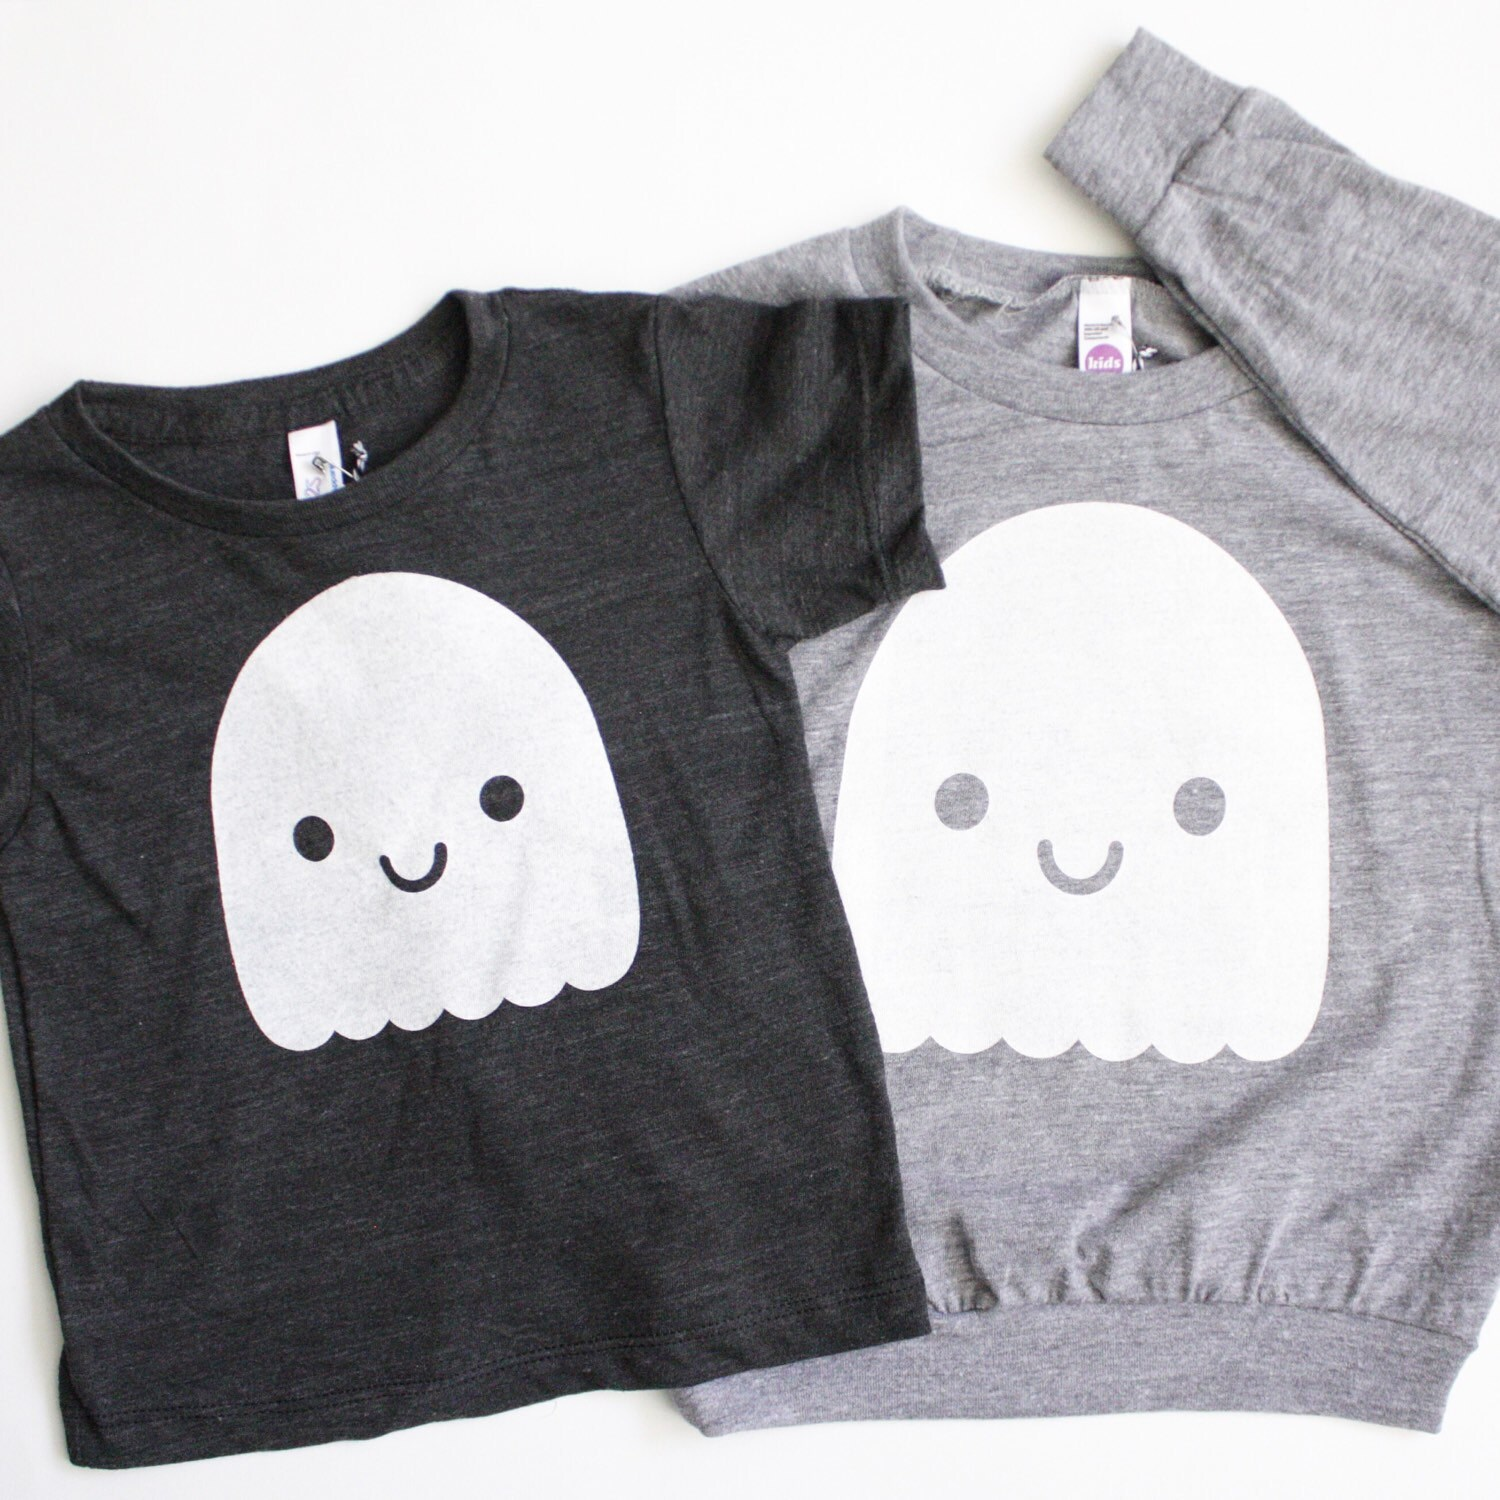 Updates From Mochikids On Etsy